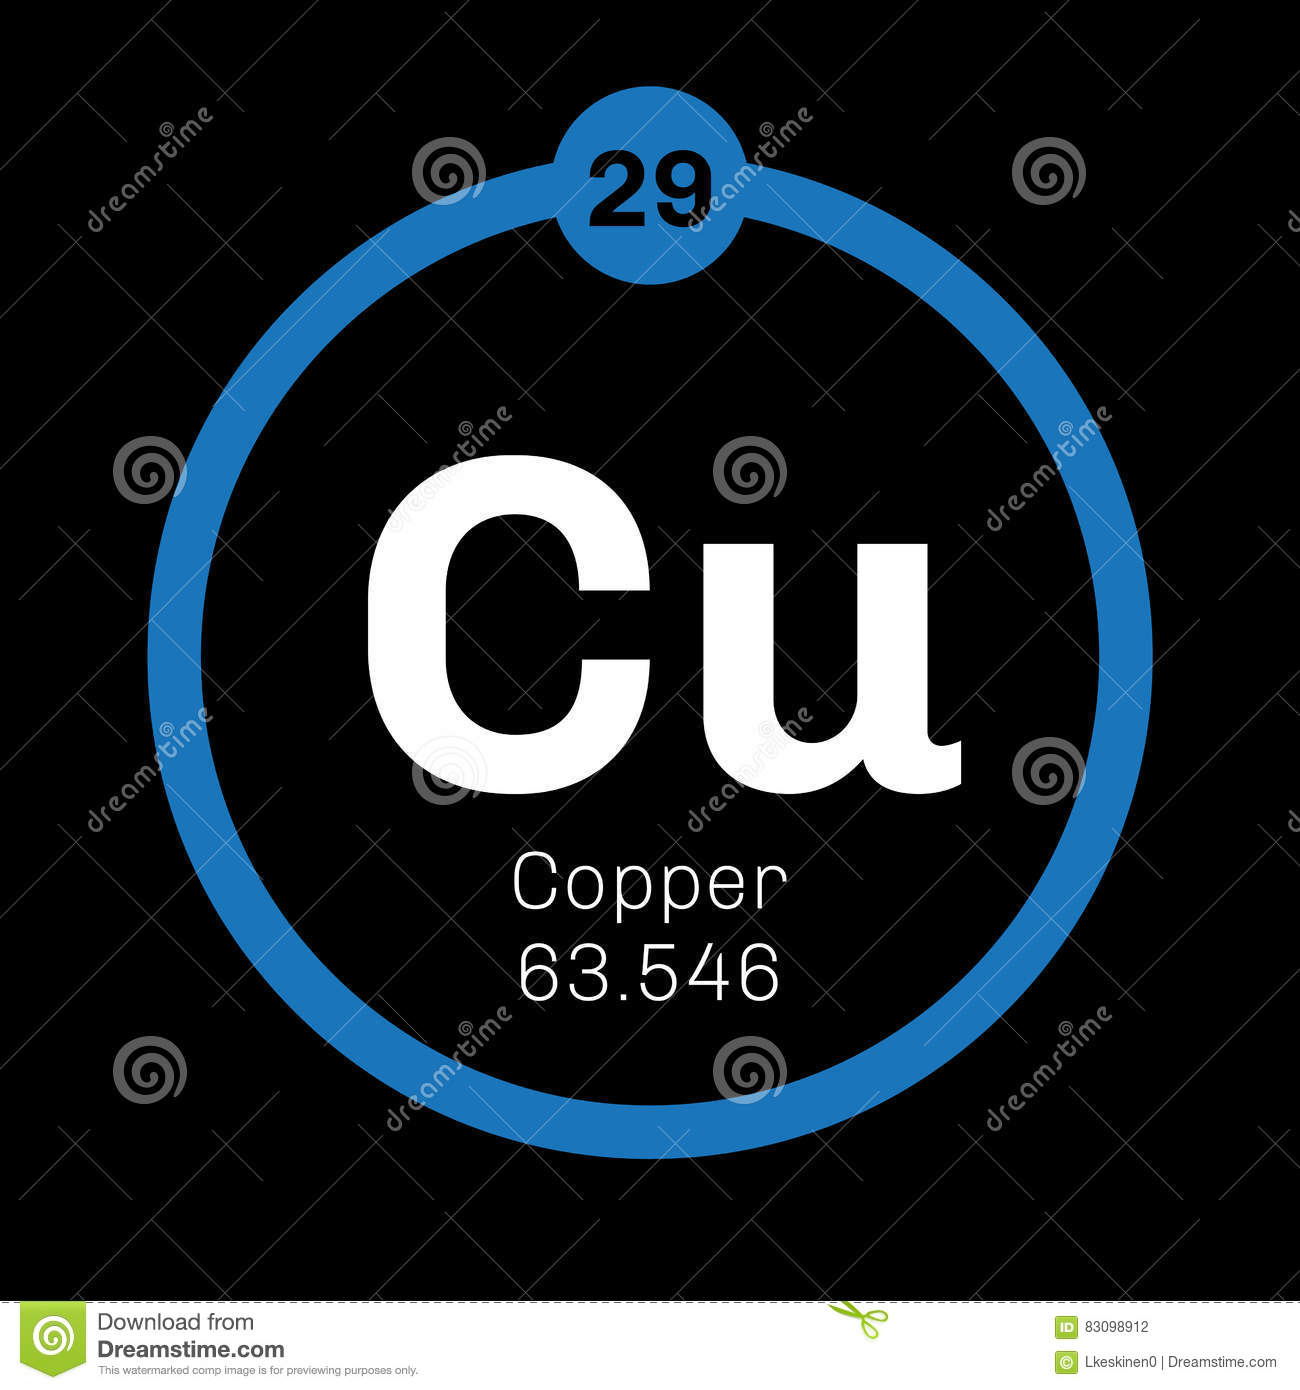 Copper chemical element stock vector illustration of element 83098912 download copper chemical element stock vector illustration of element 83098912 urtaz Image collections